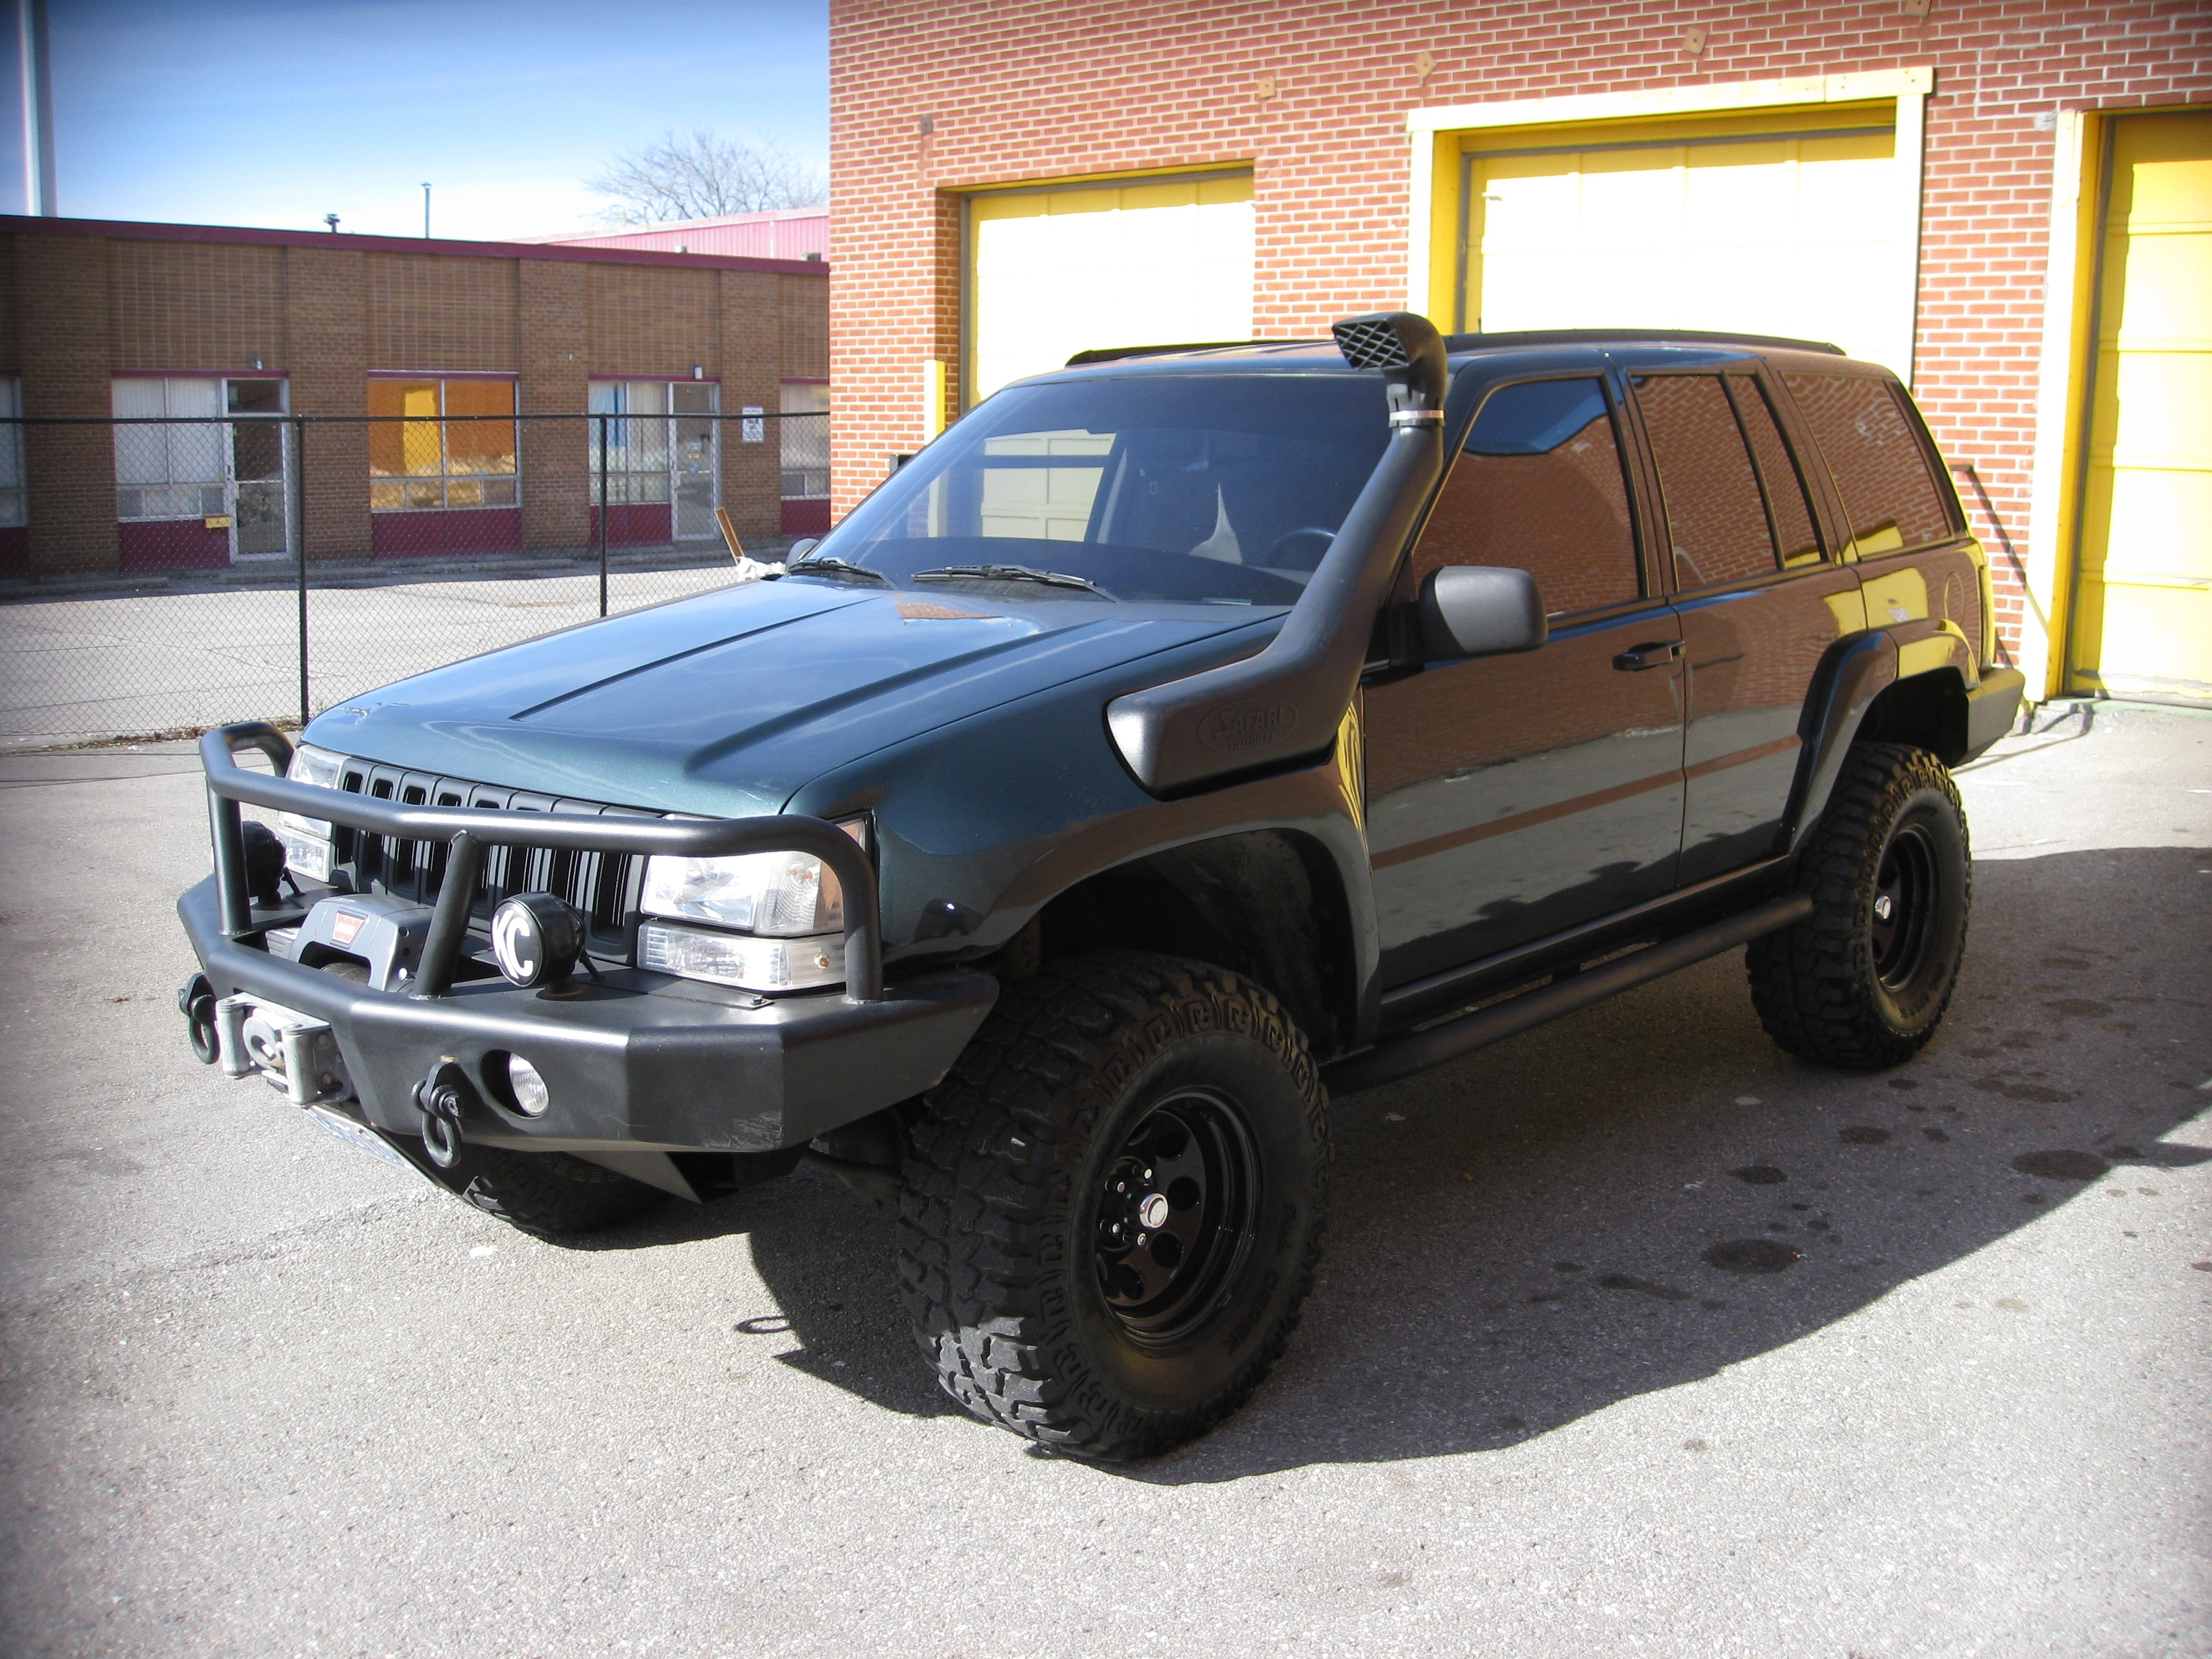 Joseph_1995_zj 1995 jeep grand cherokee 38980824006_original